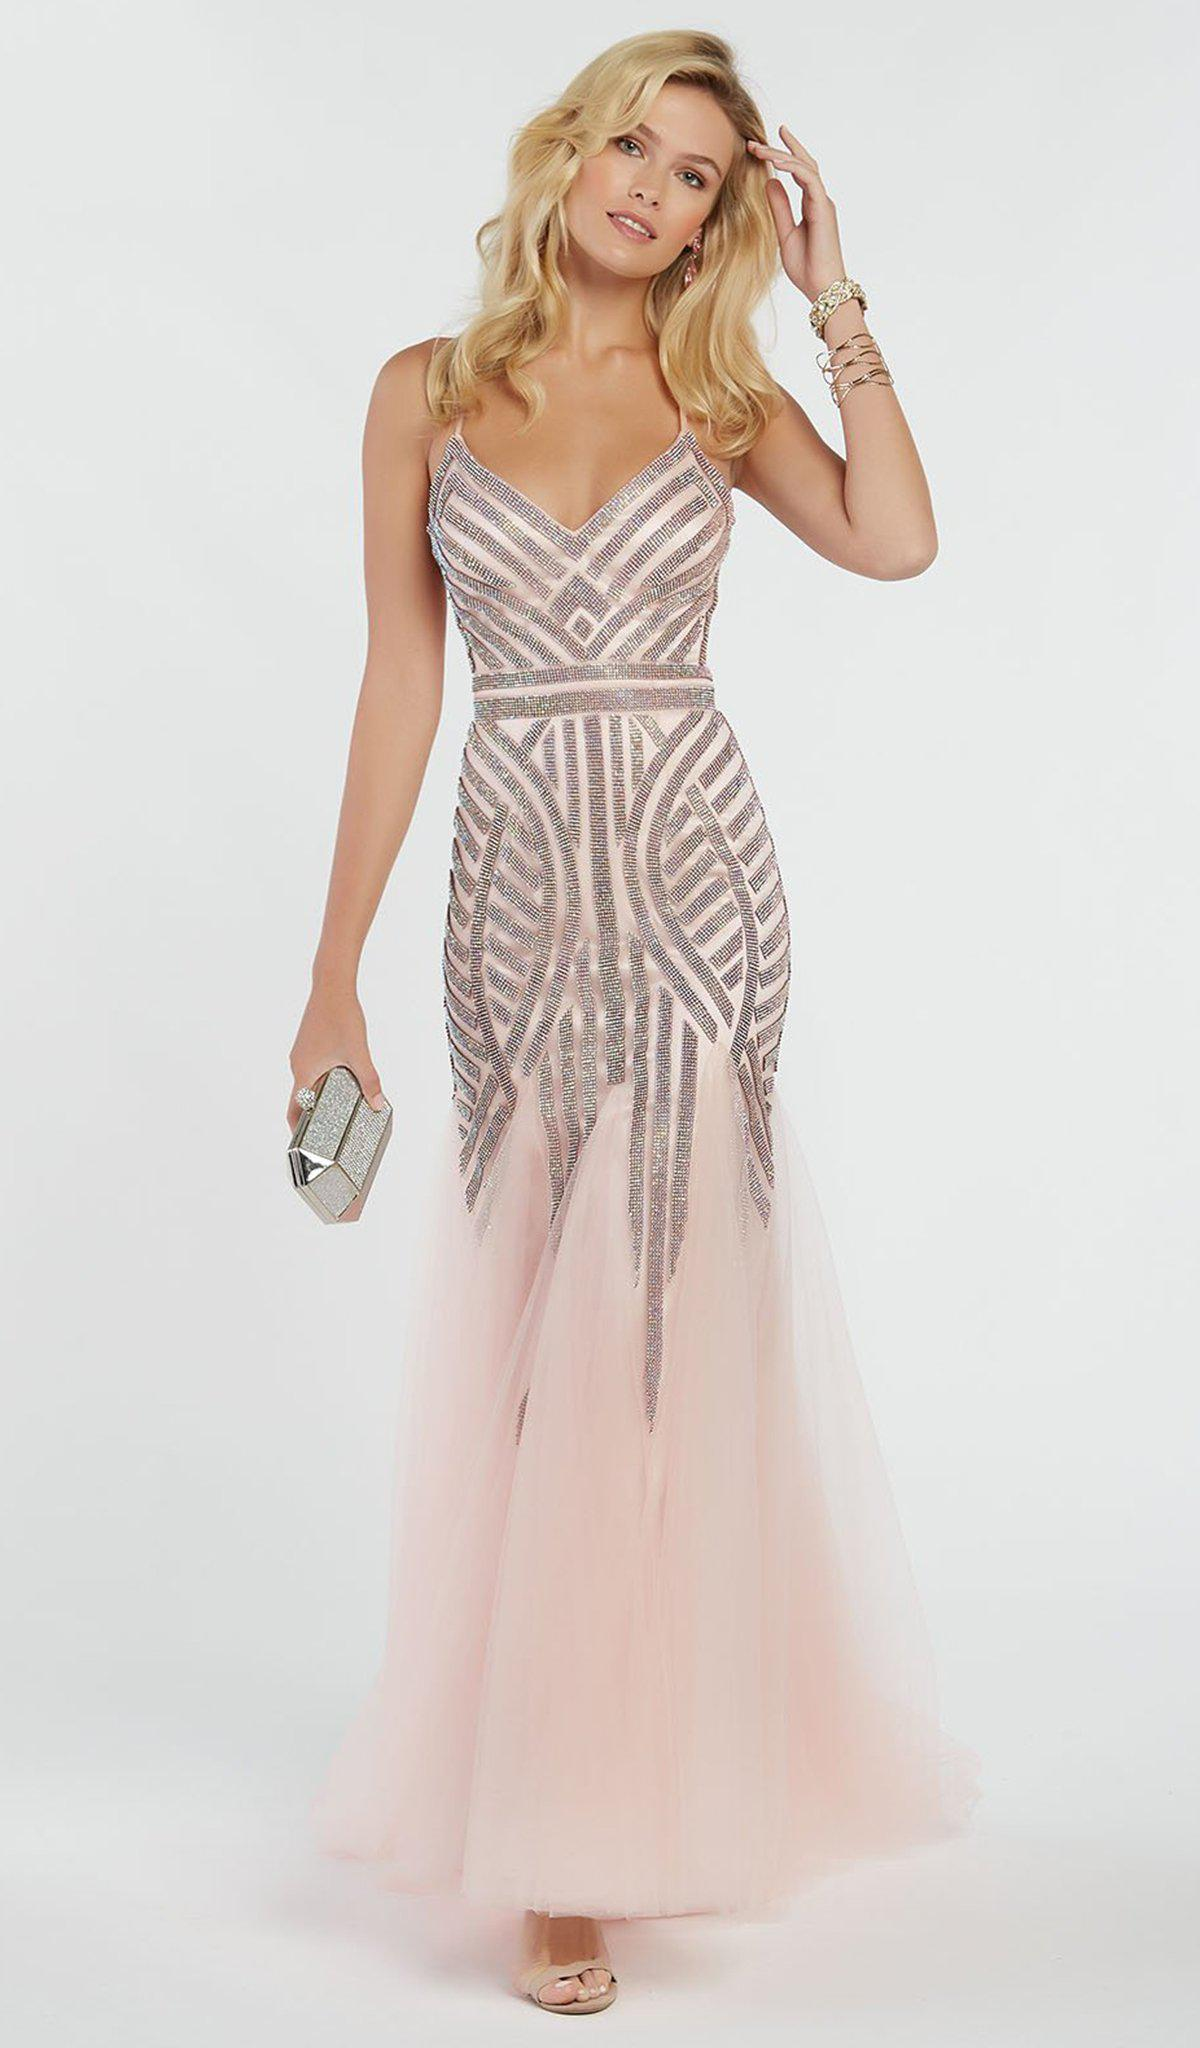 e7dae54e35 Lyst - Alyce Paris 60520 Geometric Beaded Trumpet Godet Gown in Pink